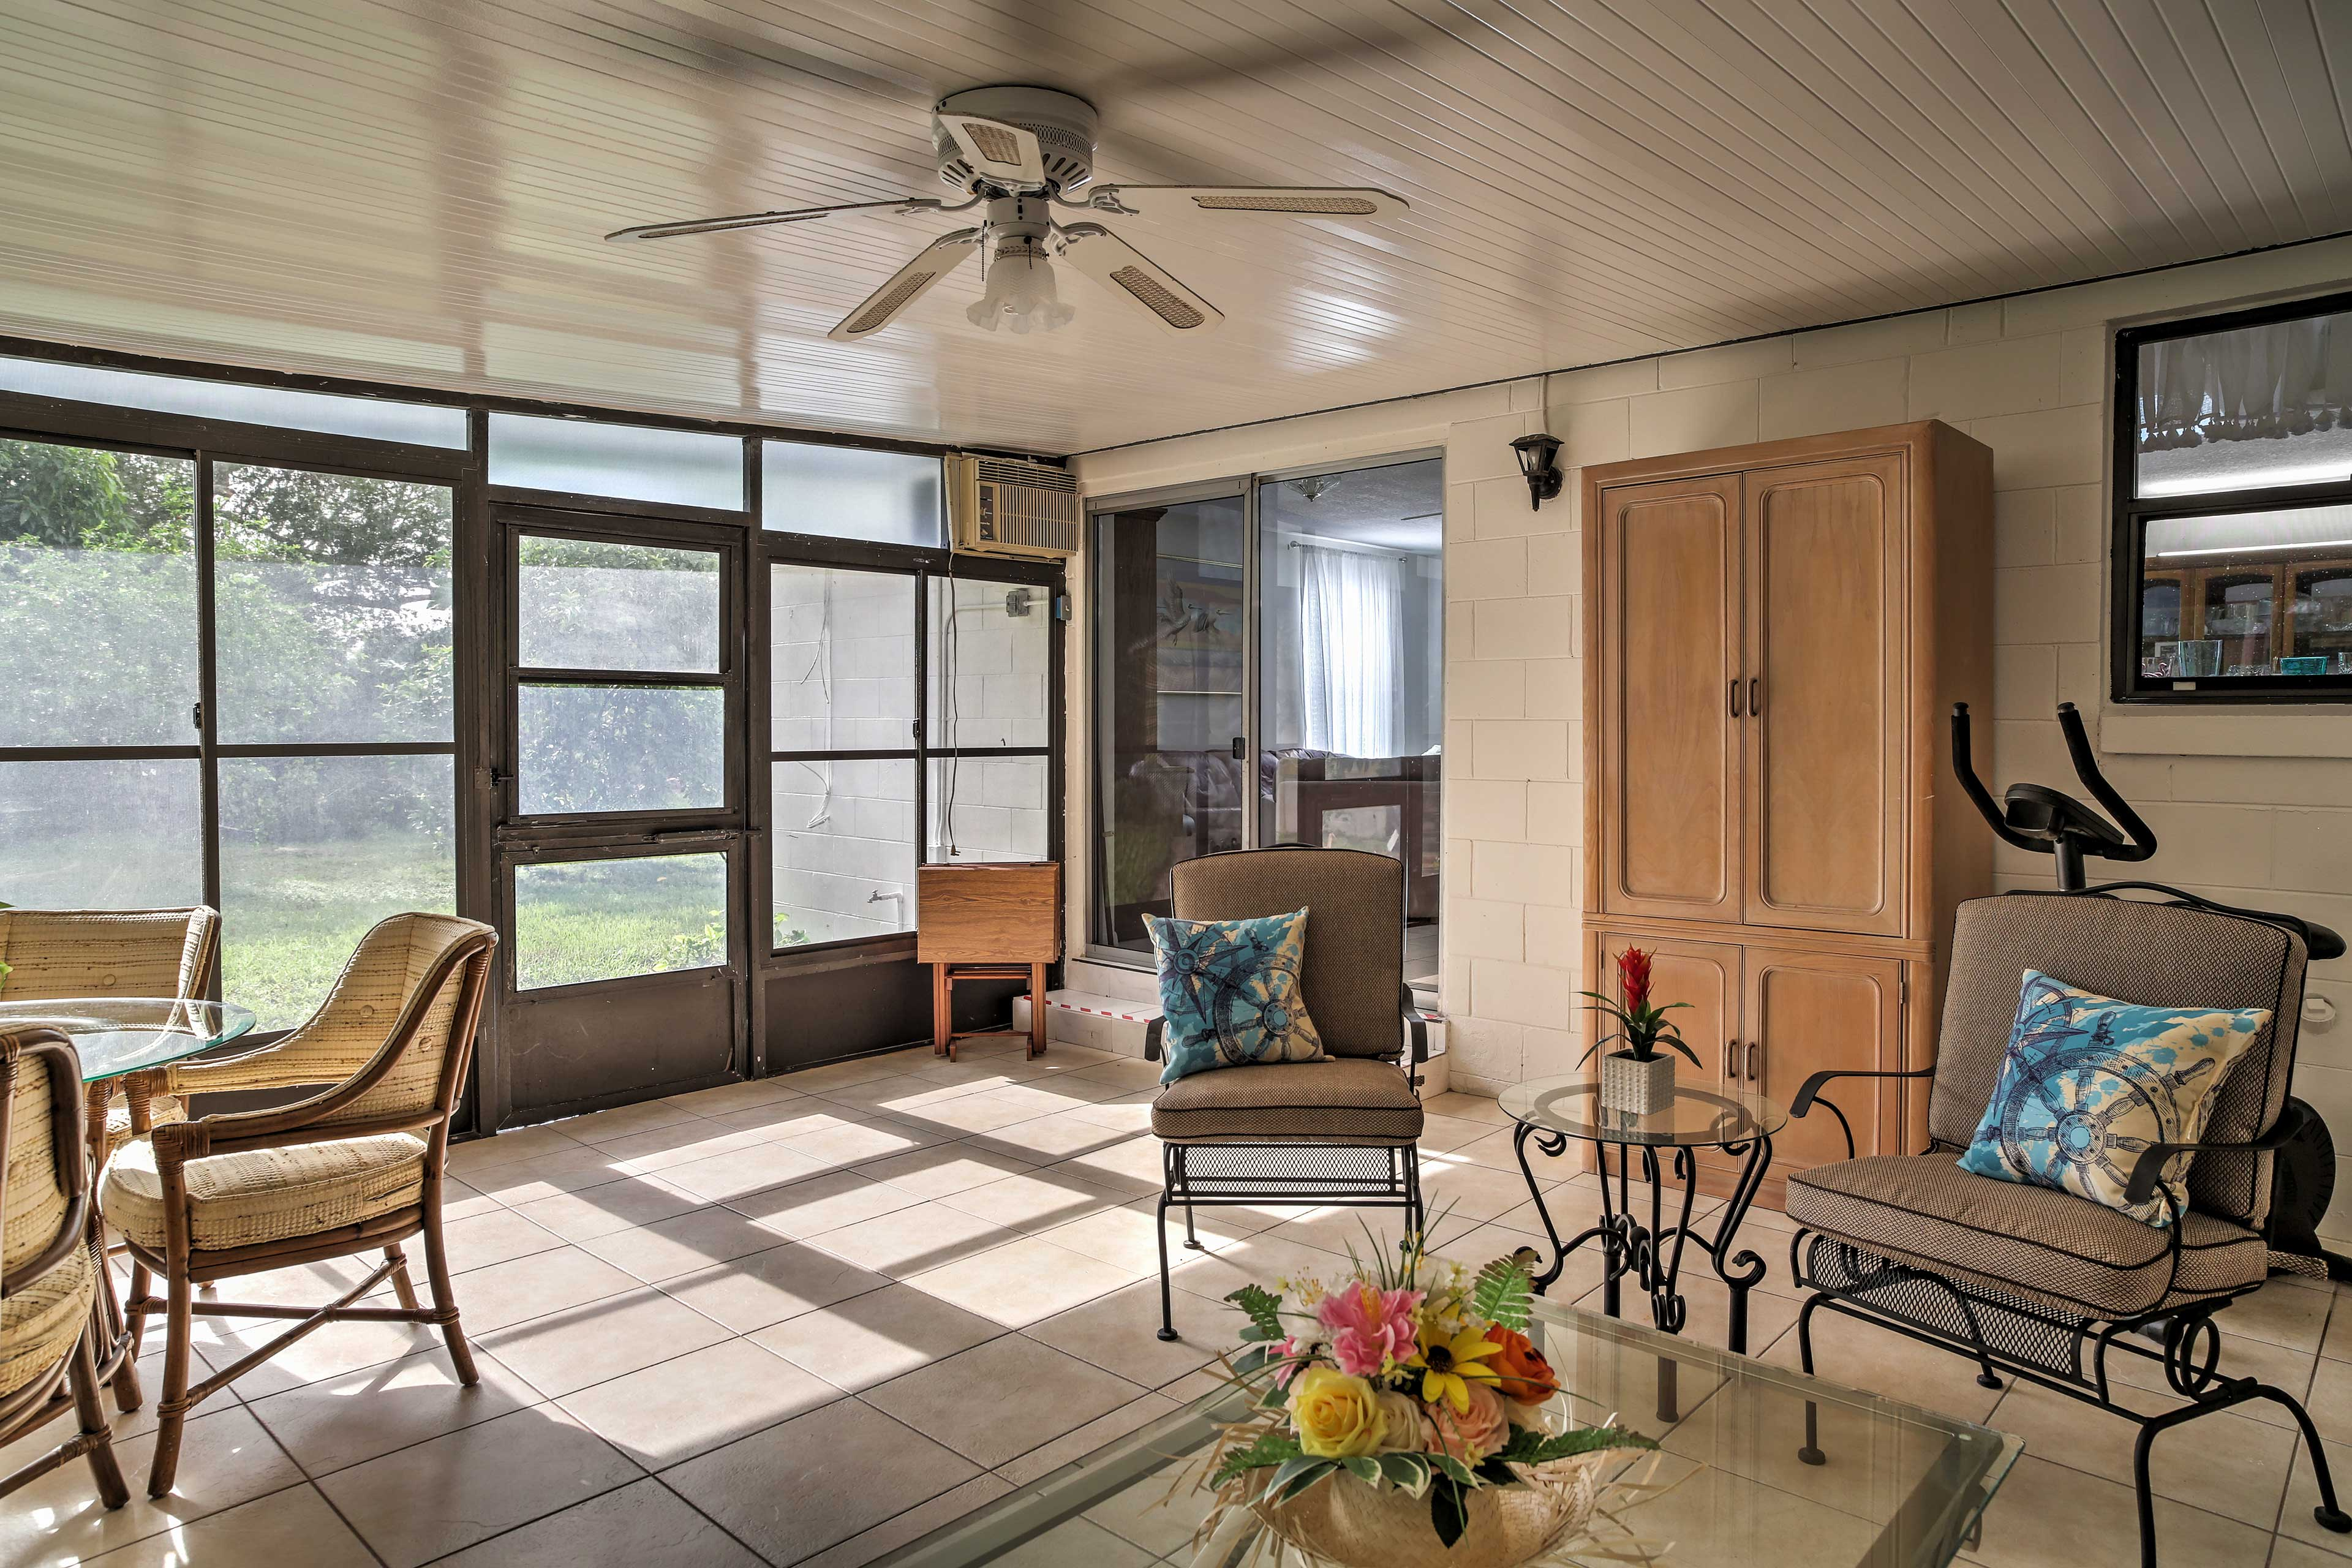 Bask in the warm natural light filling the sunroom.